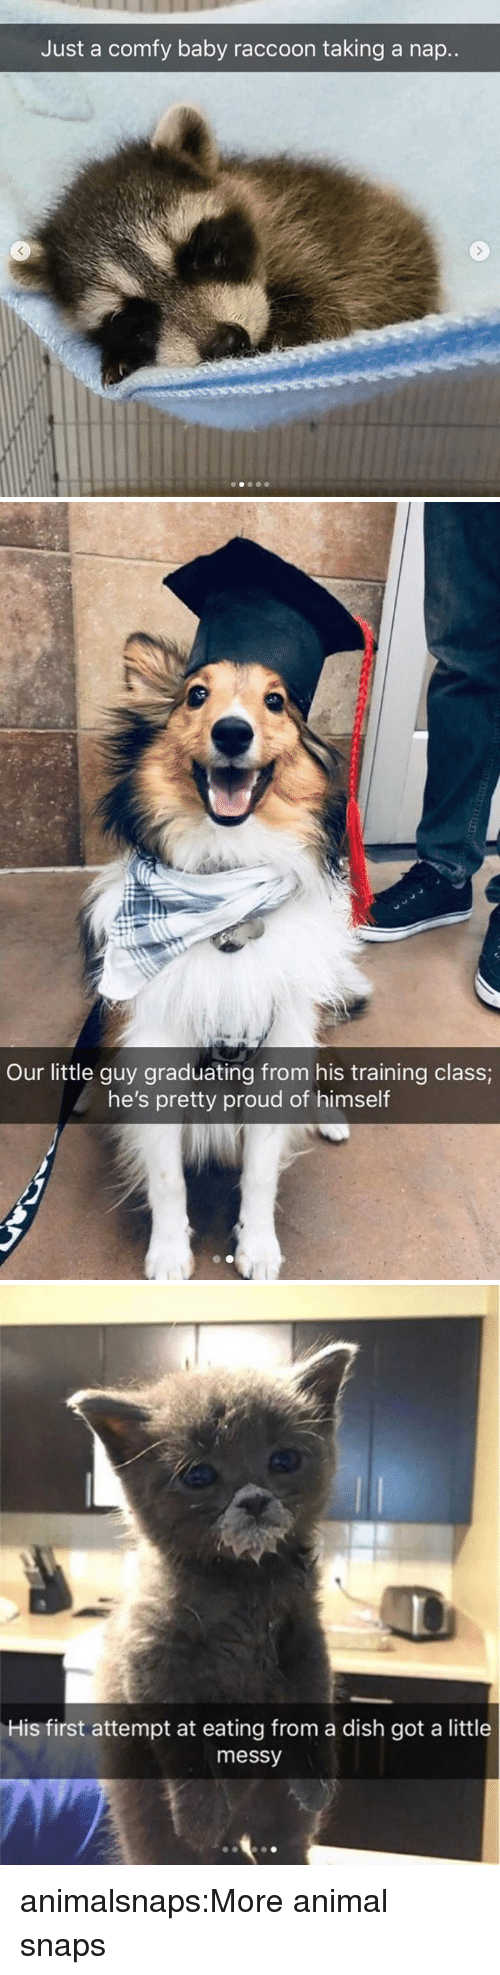 Target, Tumblr, and Animal: Just a comfy baby raccoon taking a nap..   Our little guy graduating from his training class  he's pretty proud of himself   His first attempt at eating from a dish got a little  messy animalsnaps:More animal snaps